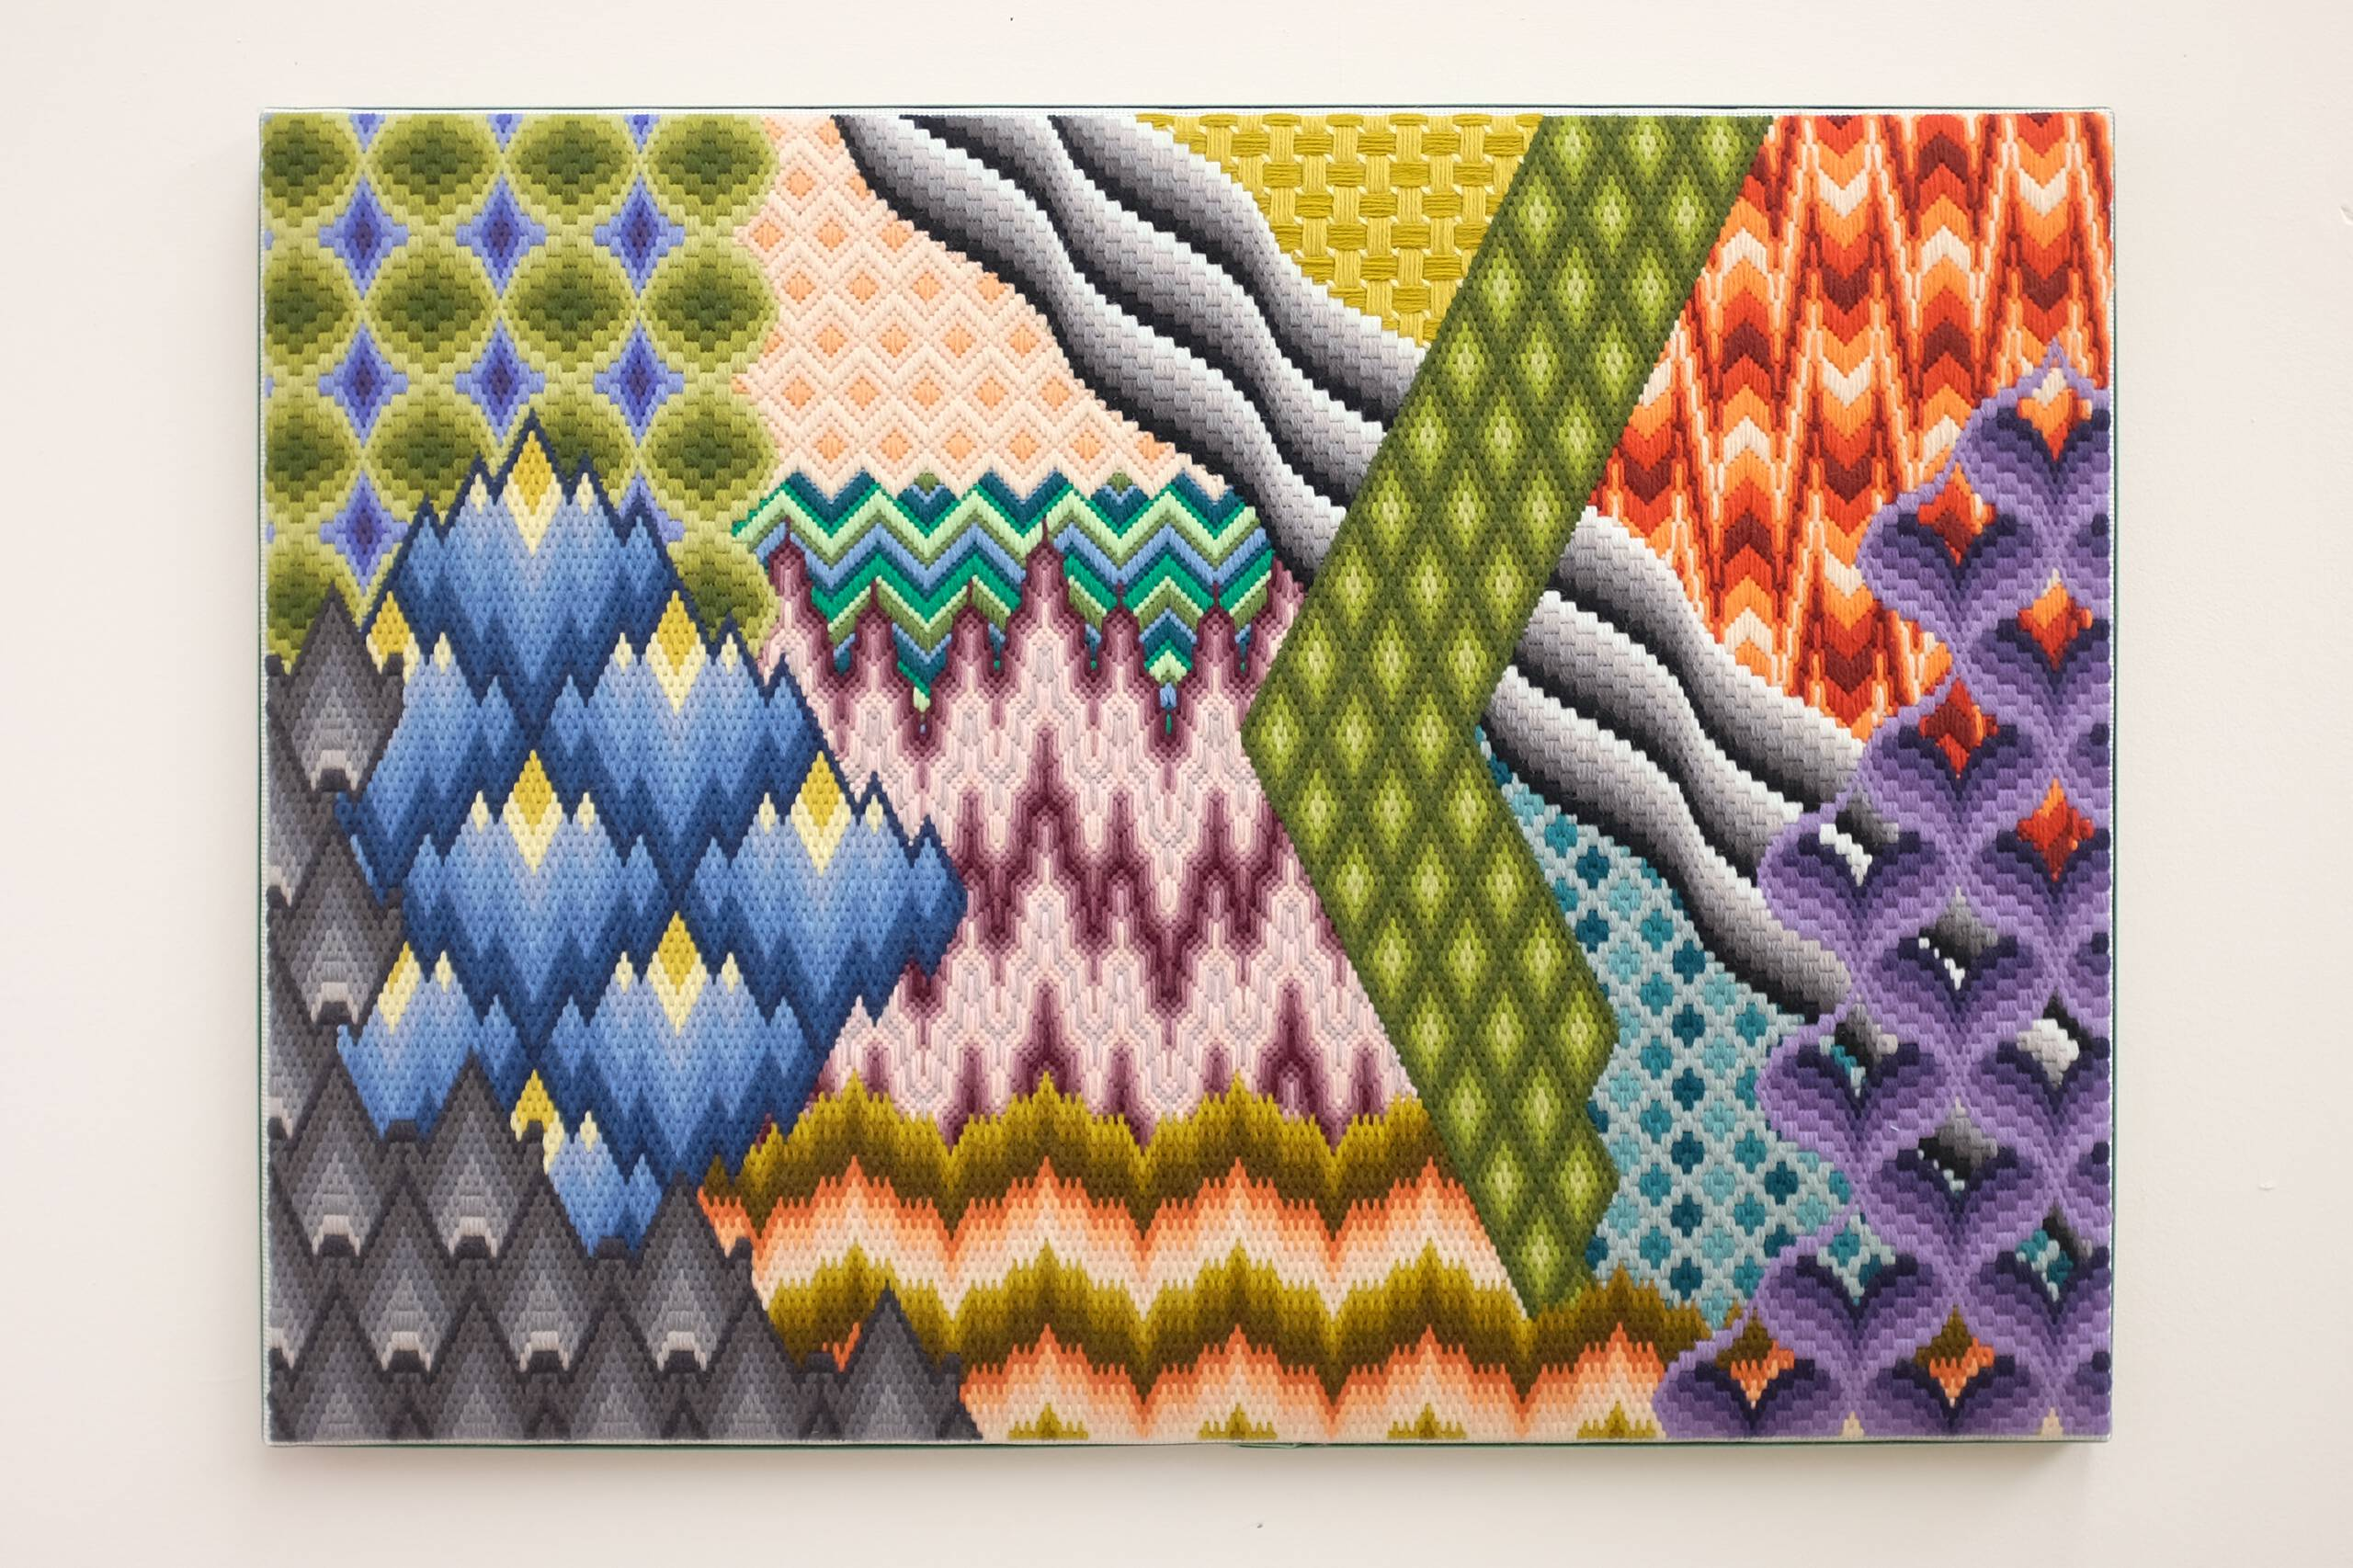 Michael Pollan says it's OK to take psychedelic drugs (in a therapeutic setting), part 1, Hand-embroidered wool on canvas over panel, 2018